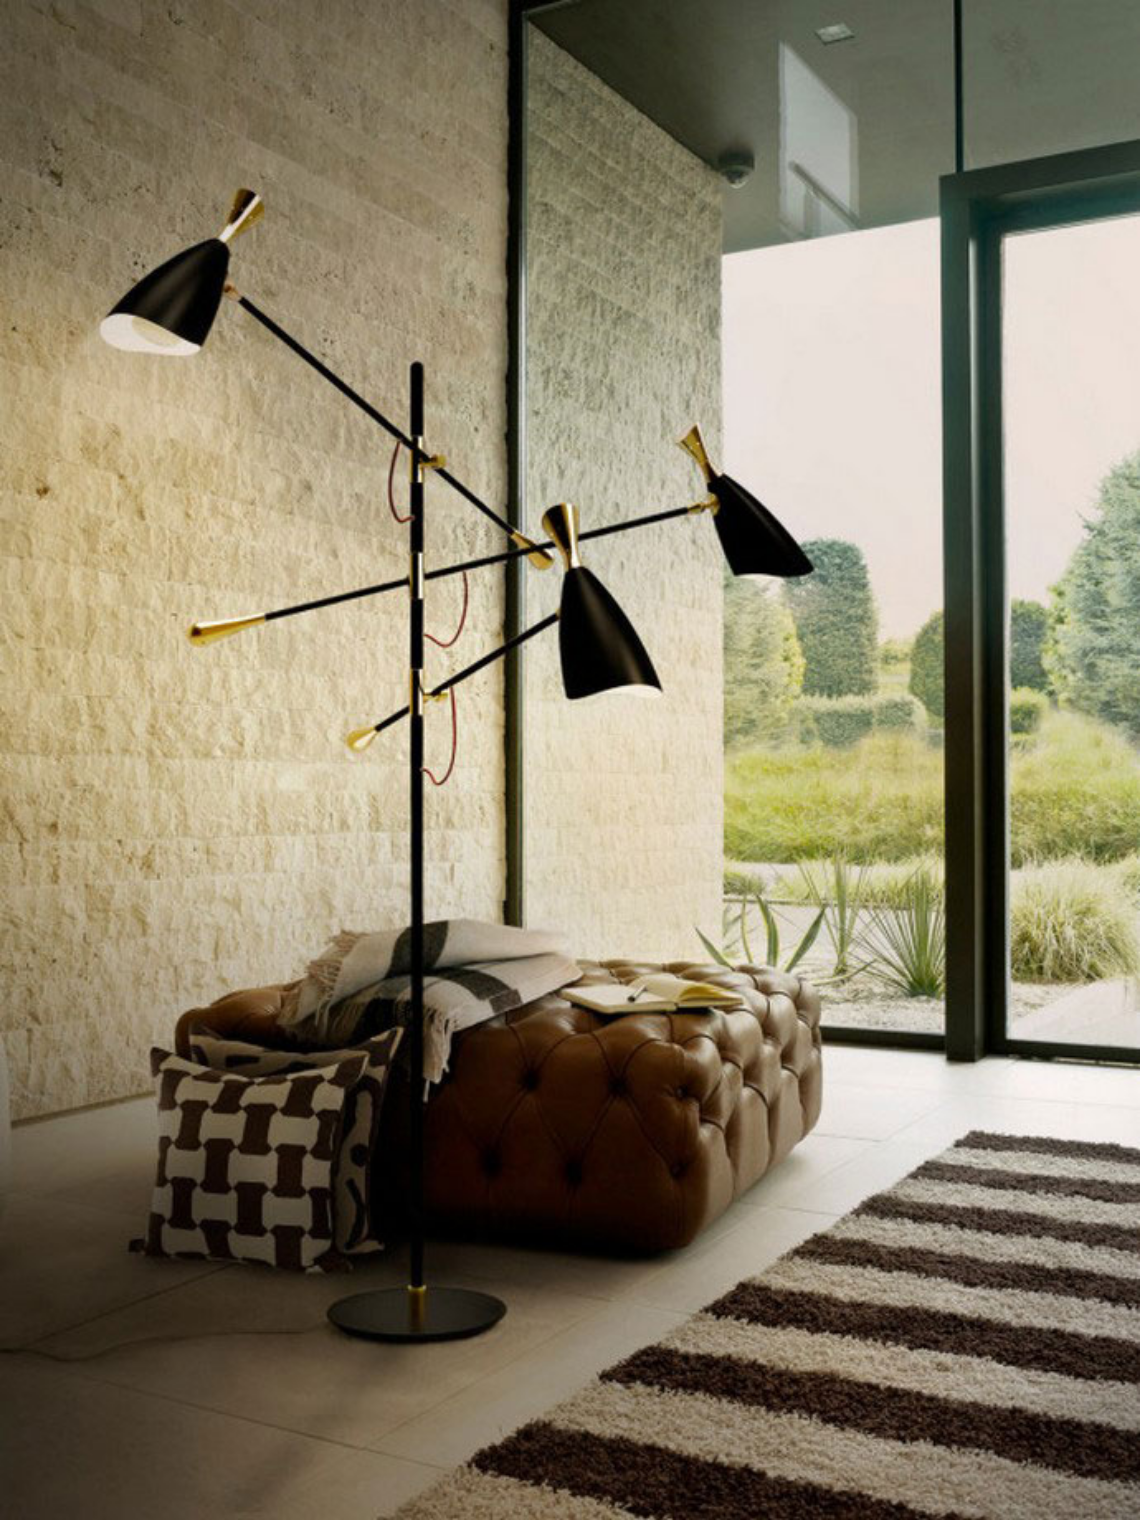 Light Up Your World With These Lighting Ideas lighting ideas Light Up Your World With These Lighting Ideas 2 12